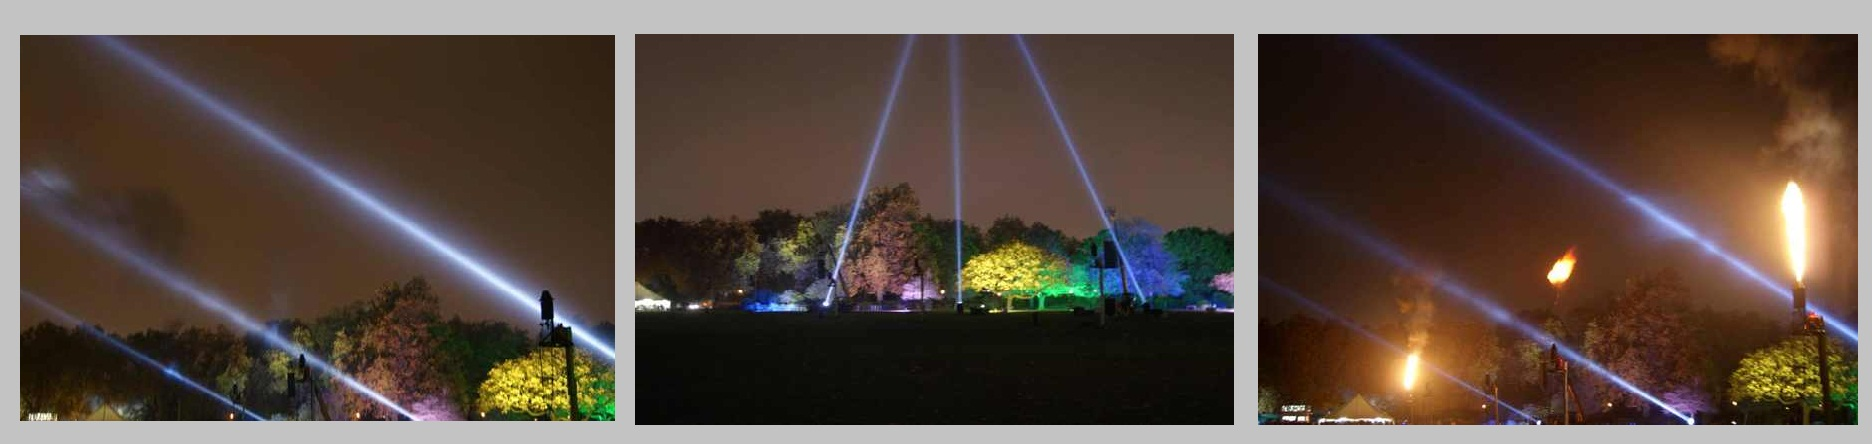 BATTERSEA PARK SEARCH LIGHTS AND FLAME SHOW